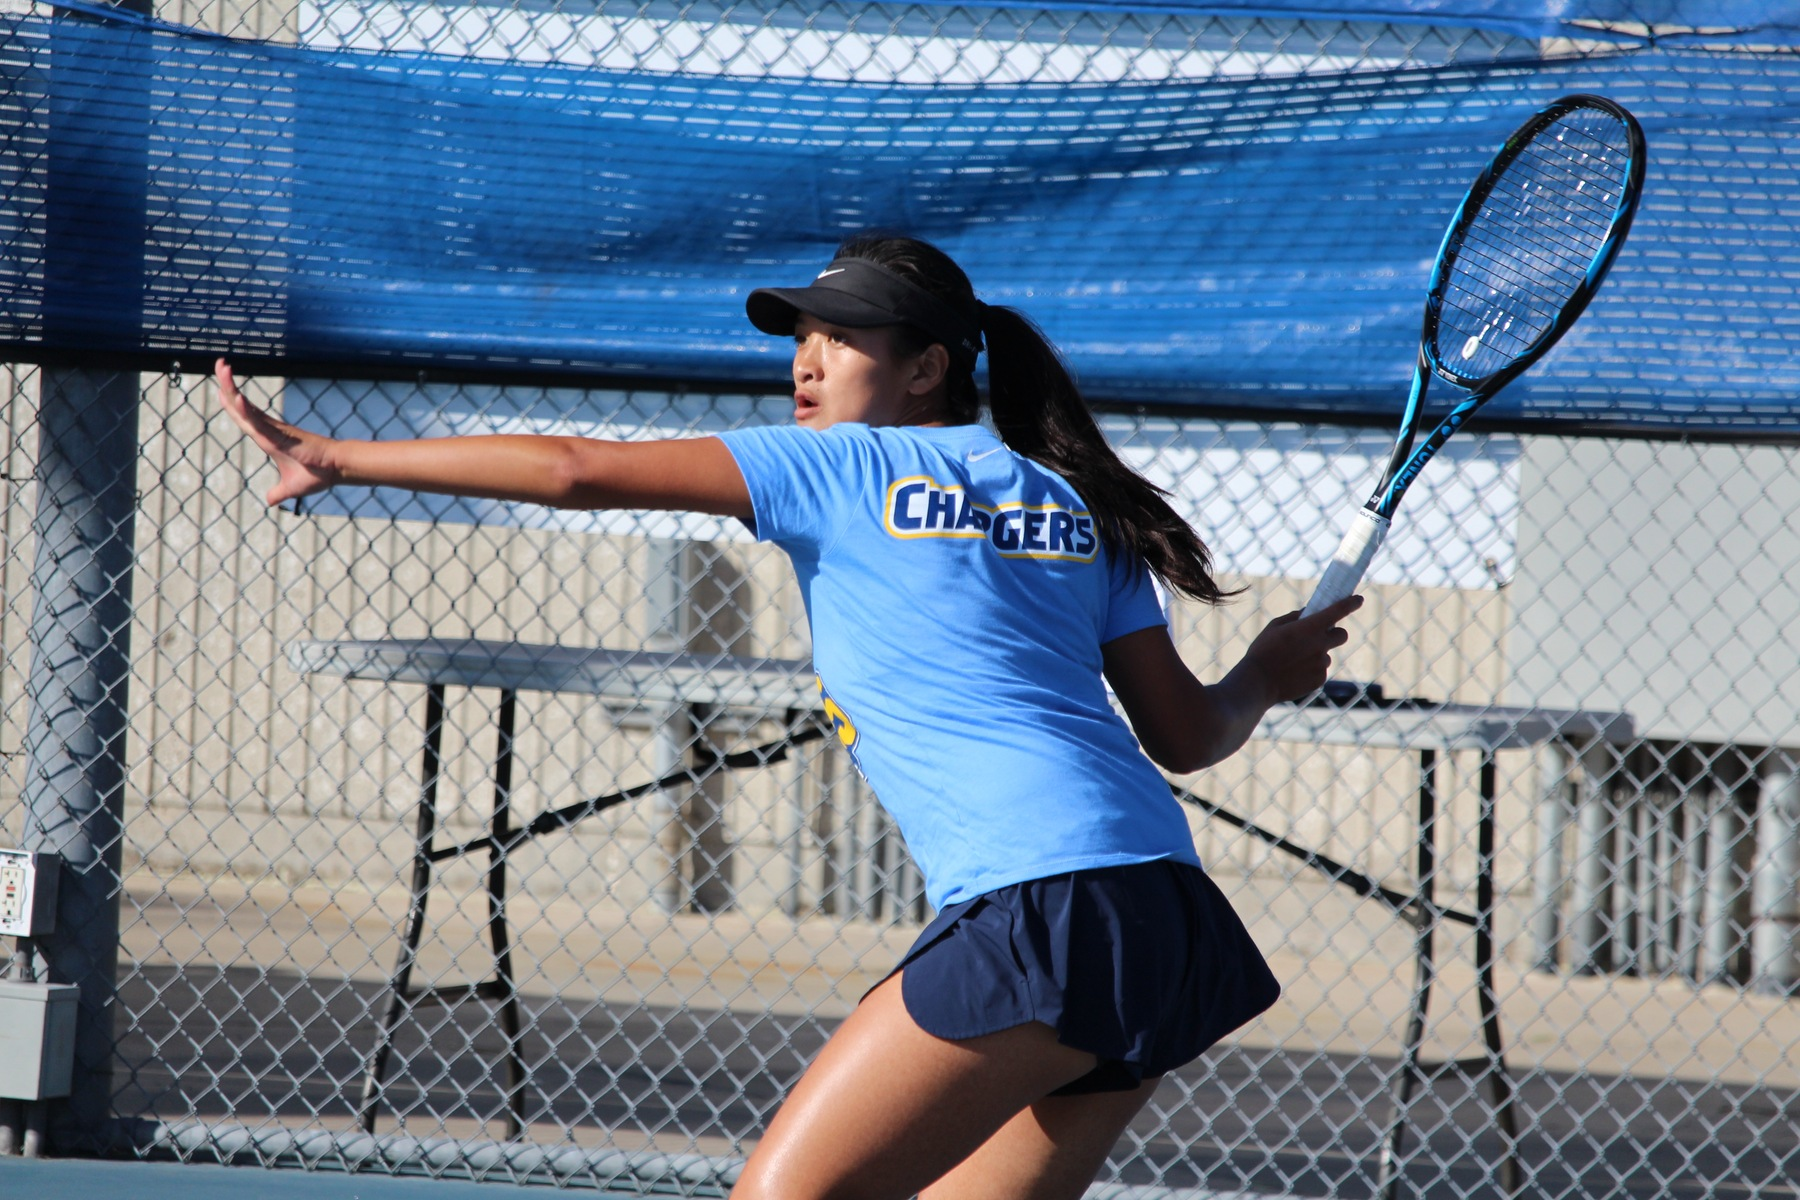 Two Lady Chargers Earn Spot in Final ITA Rankings